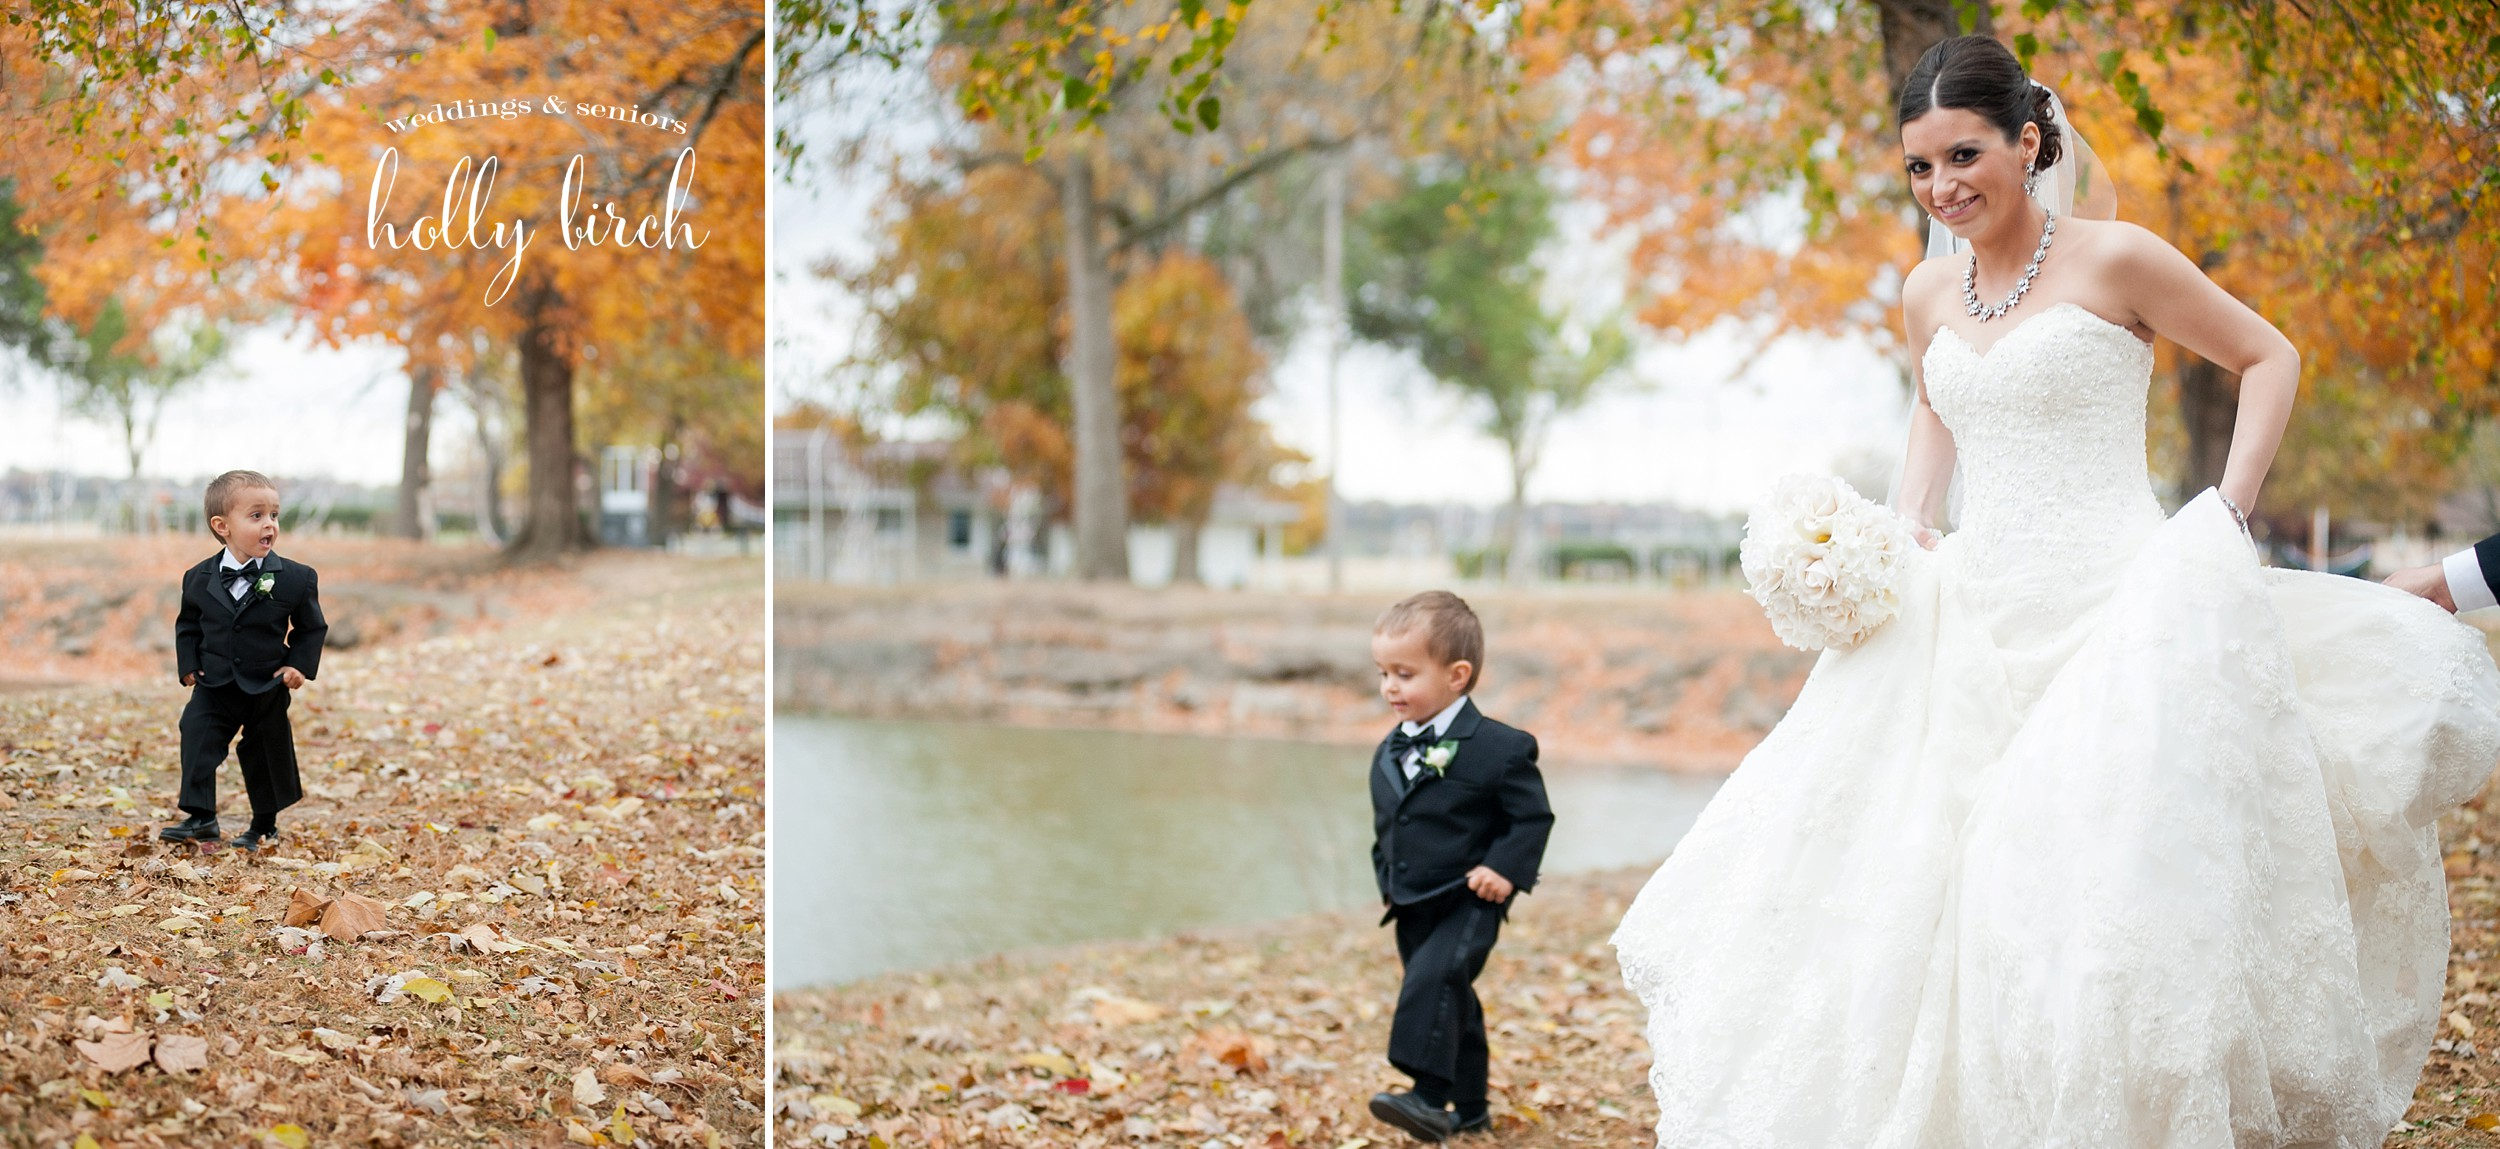 ring bearer walking like bride